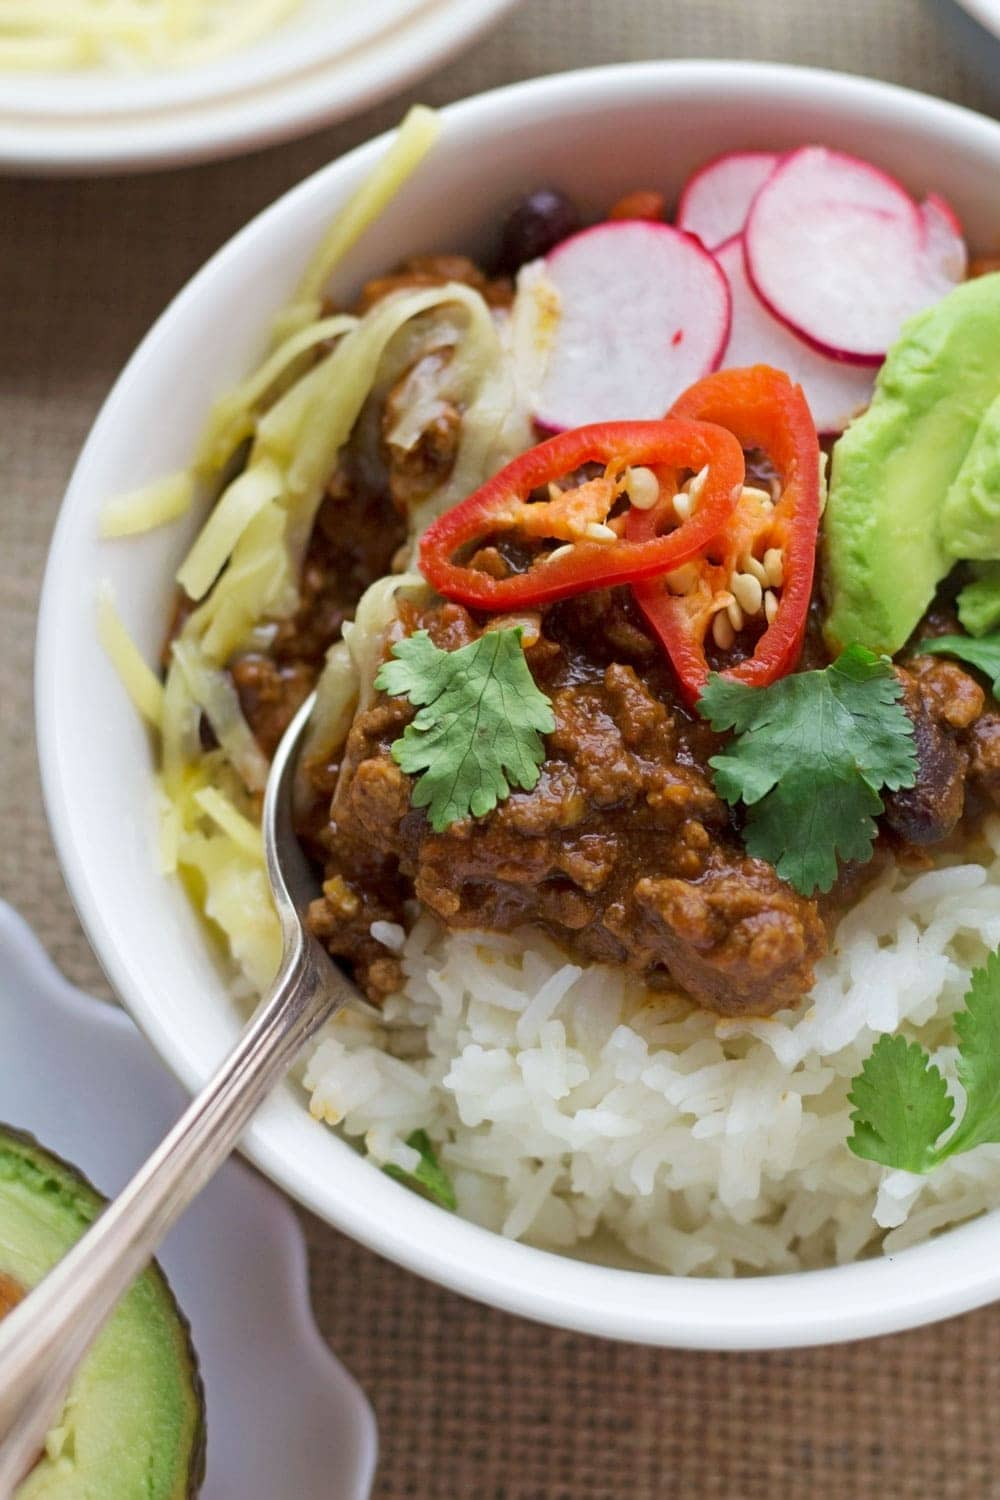 There are few things better than a classic beef chilli con carne. Make sure you don't forget the toppings, to more the better!